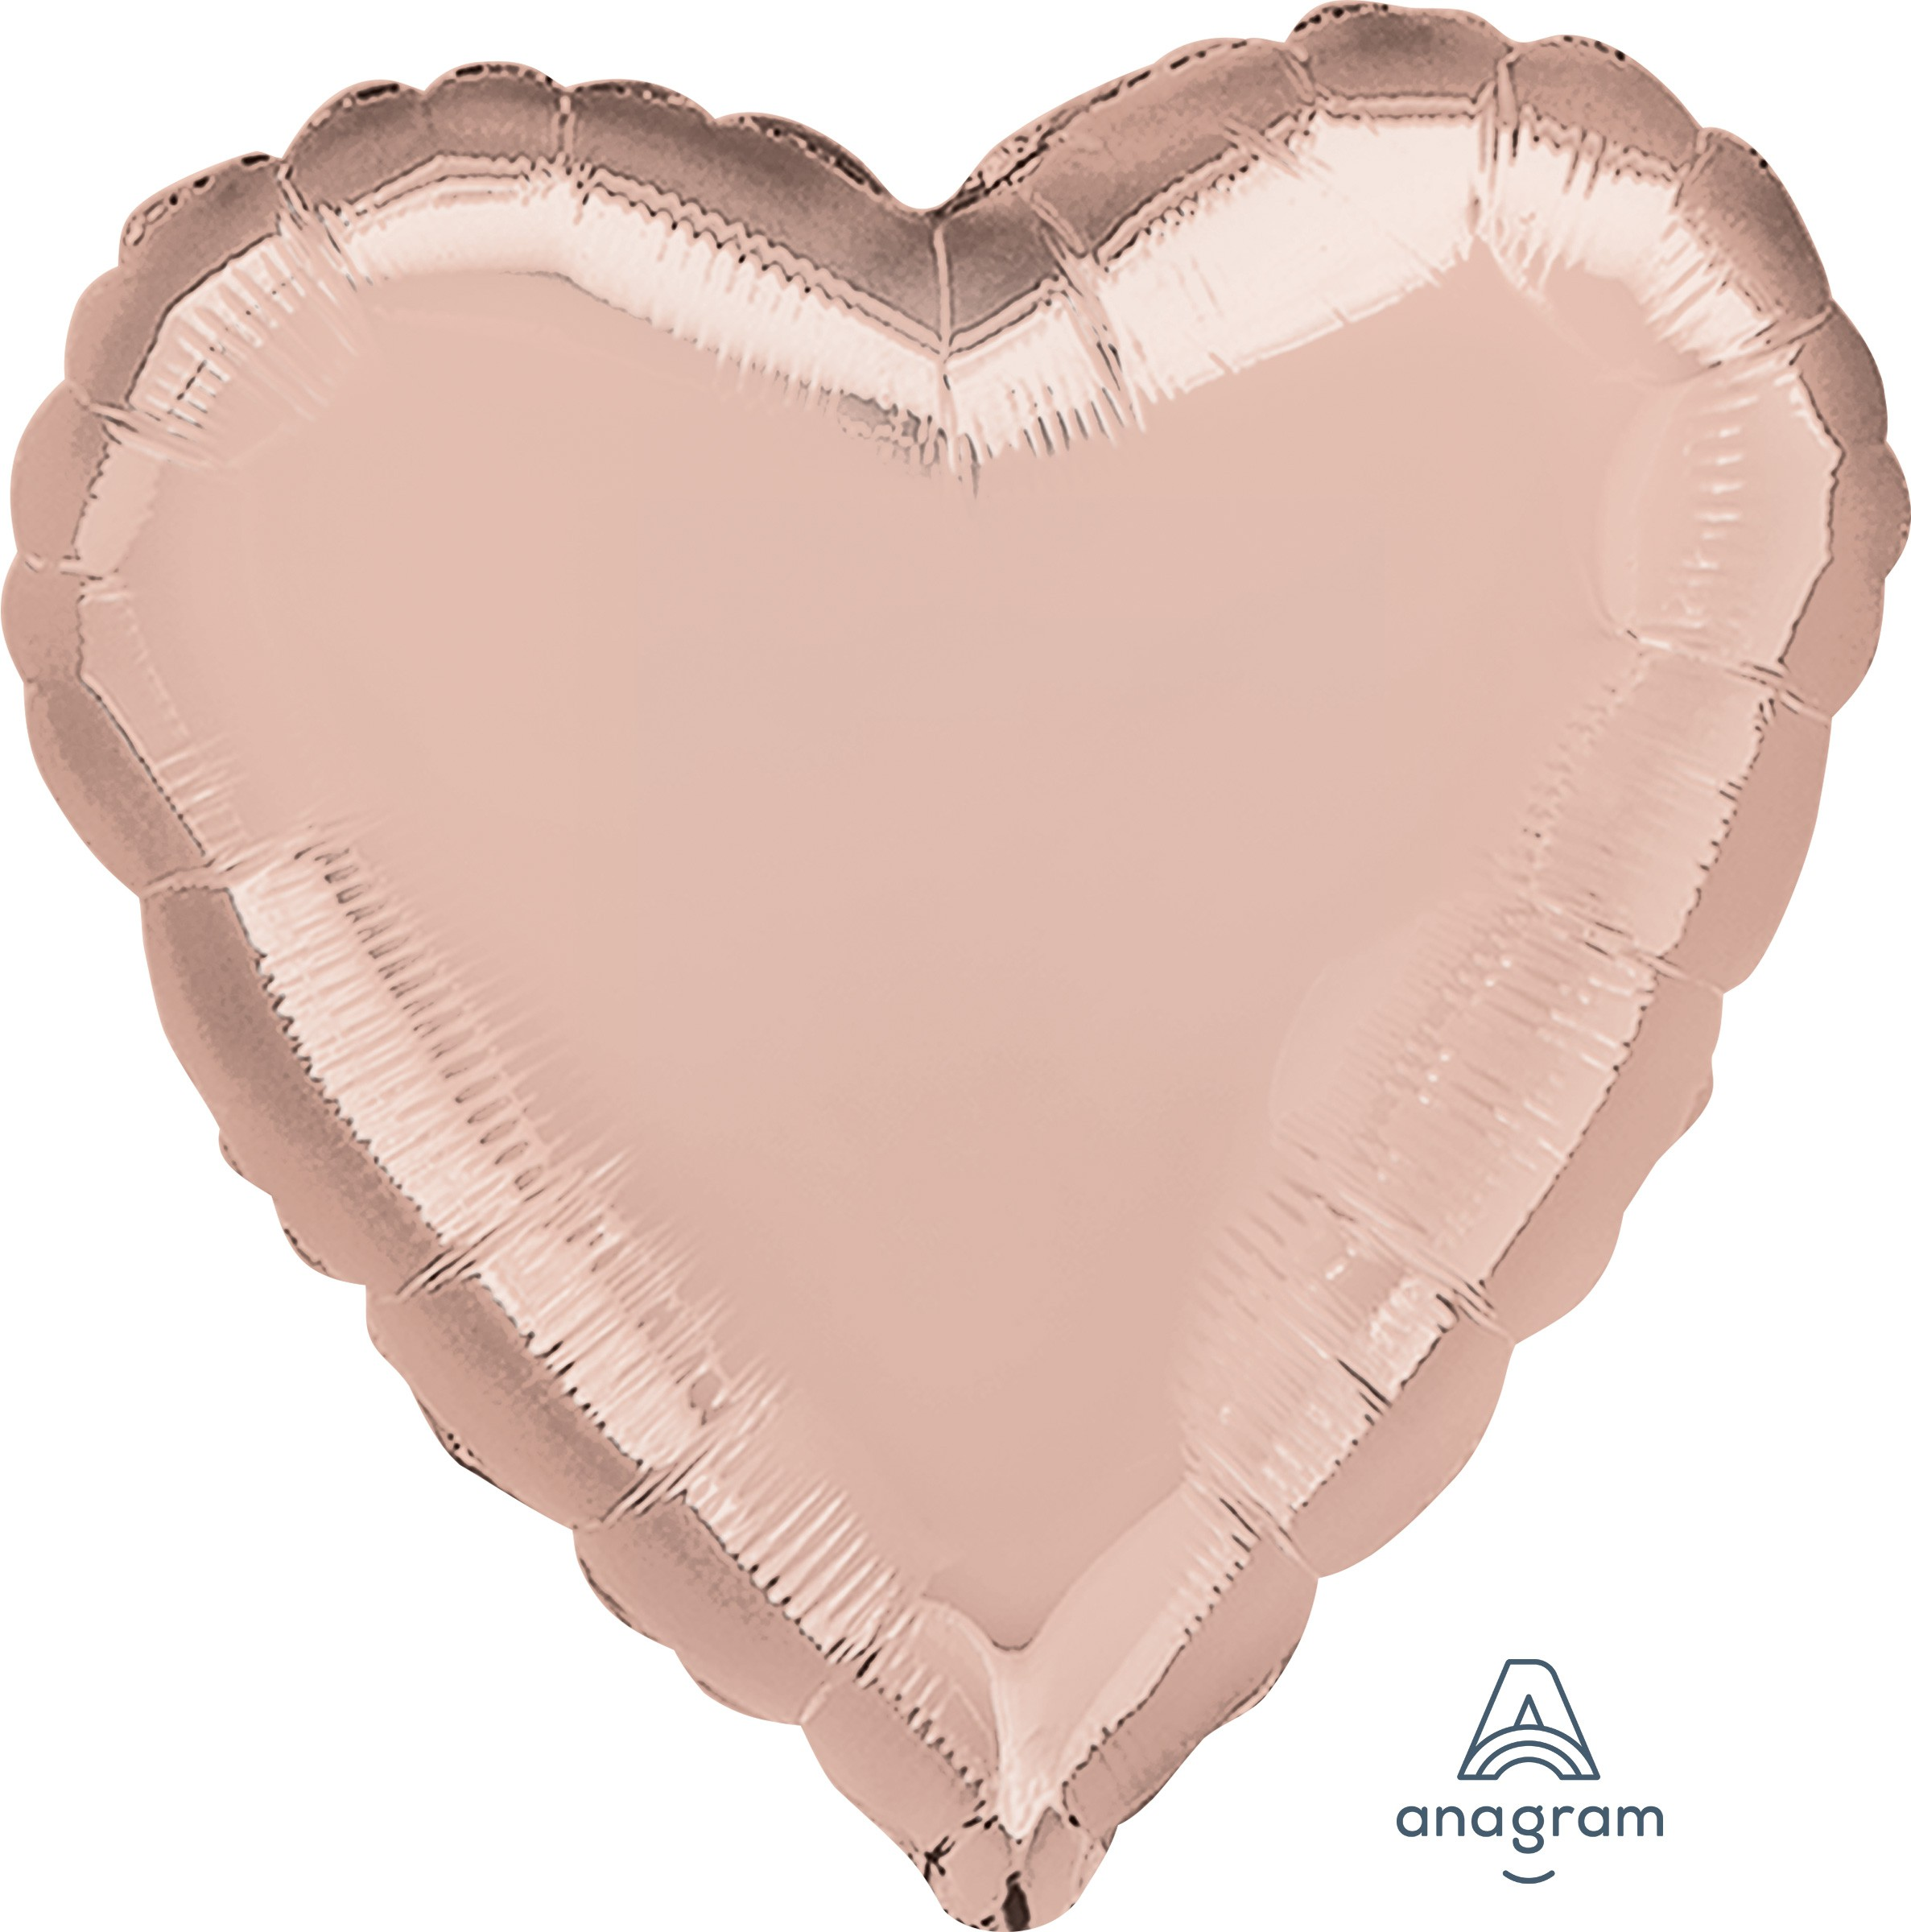 FOIL BALLOON HEART SHAPE - ROSE GOLD